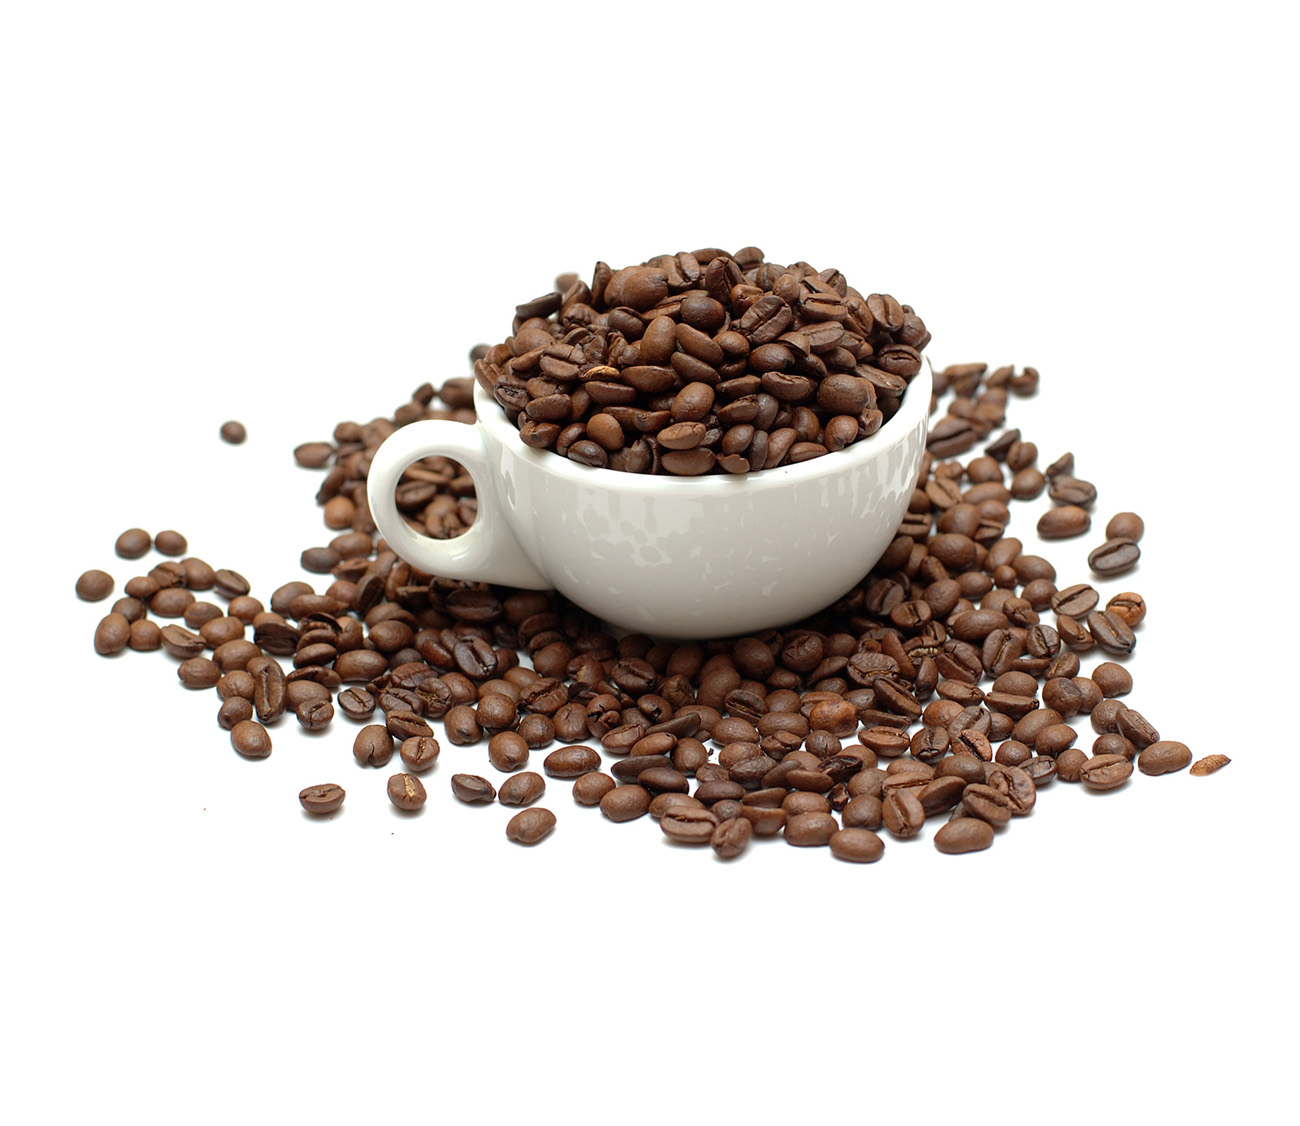 White cup with coffee beans 50482